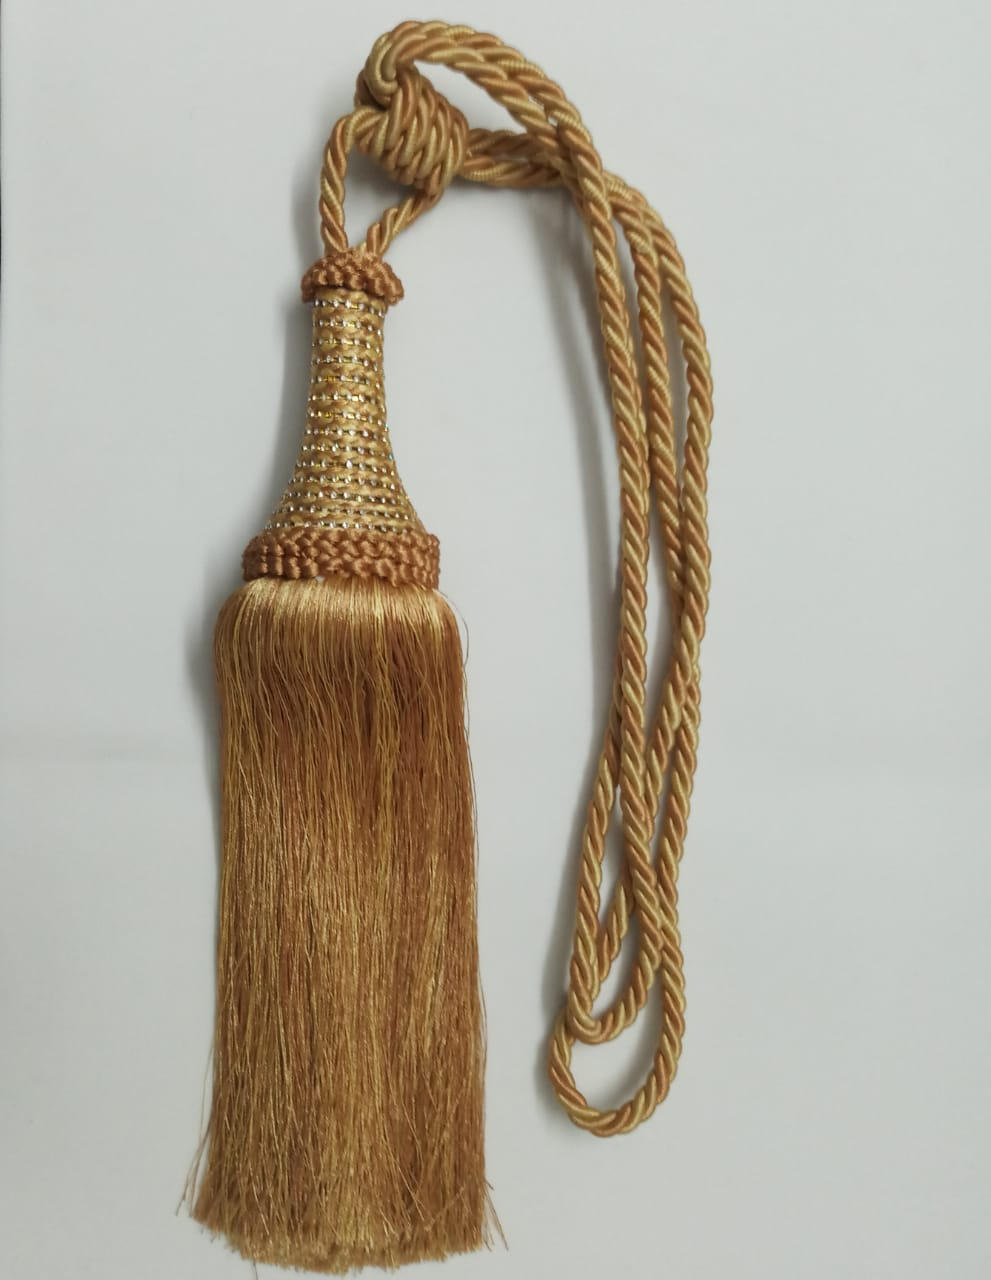 Gold & Yellow Tassel Tieback (set of 2) T68-GD-YW